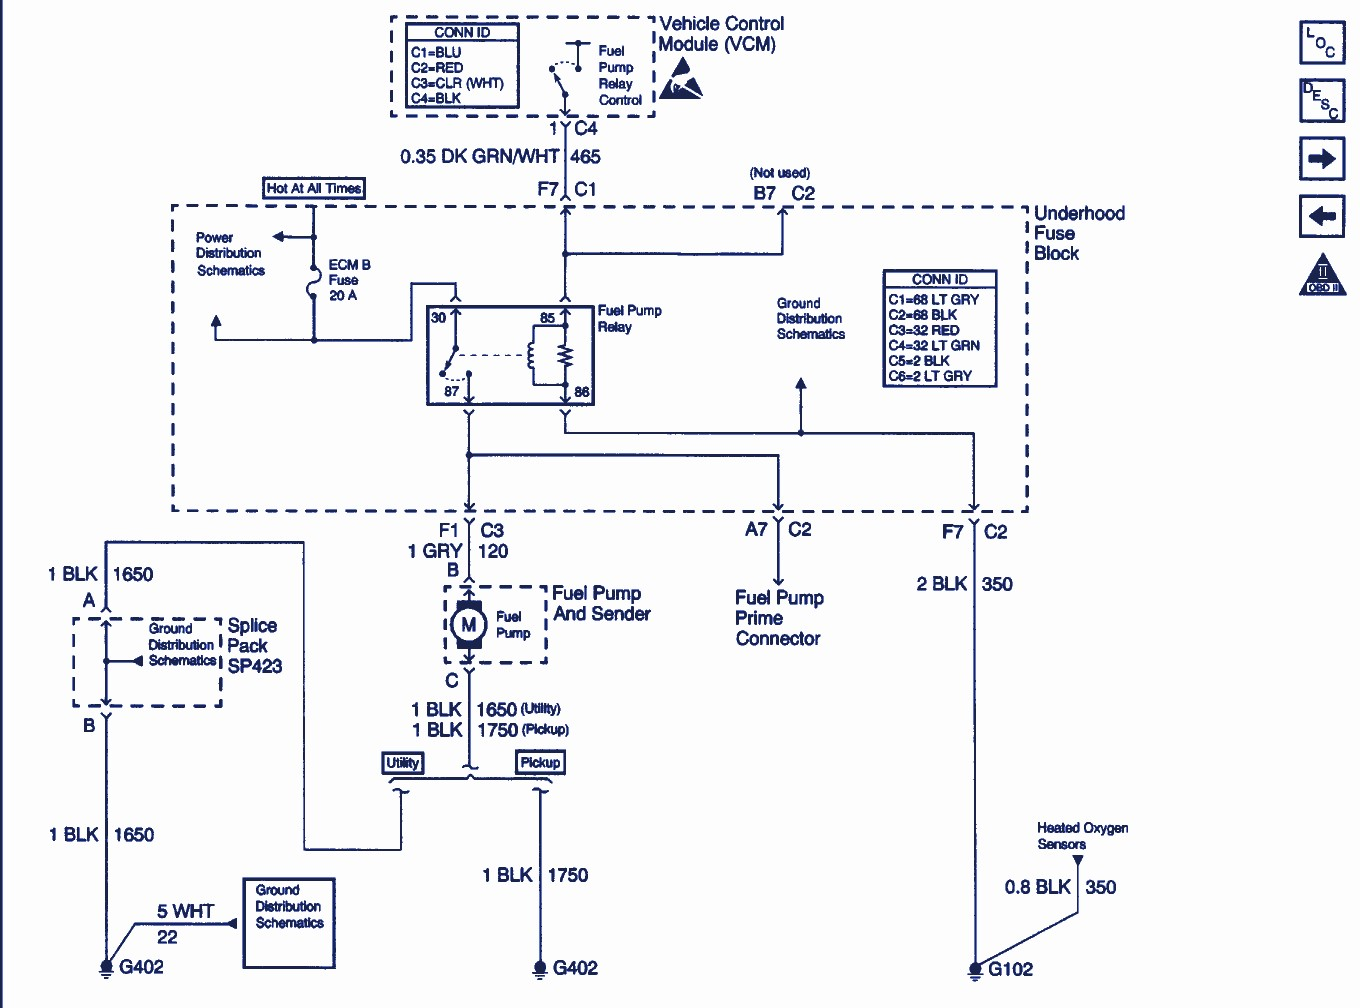 Fuel Pump Wiring Diagram Fuel Circuit Diagrams Data Schema \u2022 88 F150  Fuel System Diagram 89 F150 Fuel Pump Wiring Diagram